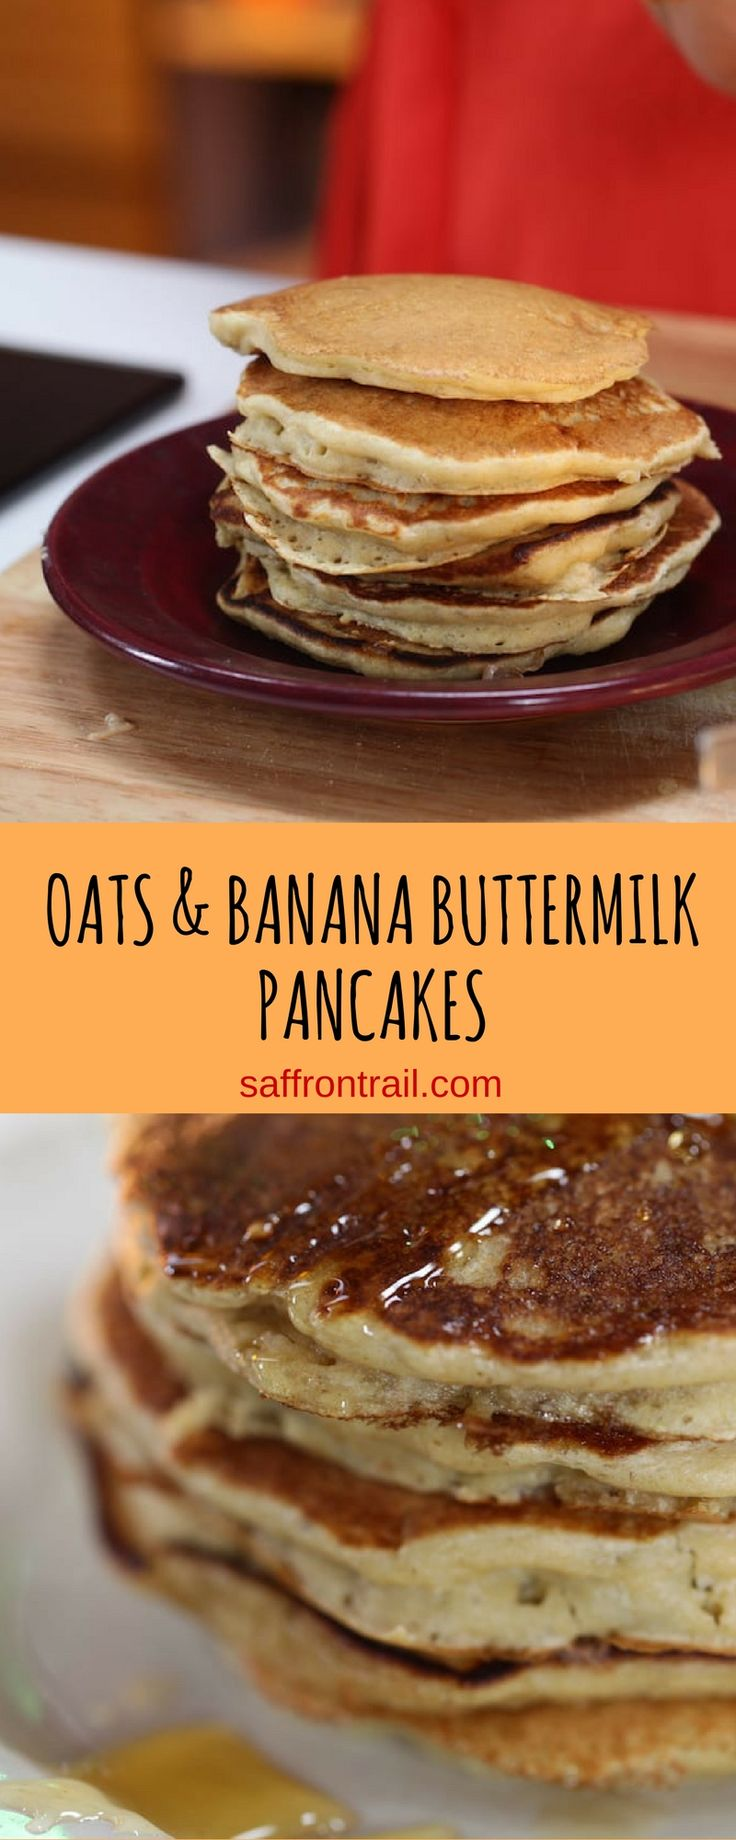 These Oats and Banana Buttermilk Pancake is proof of when delicious and healthy eating go hand in hand!